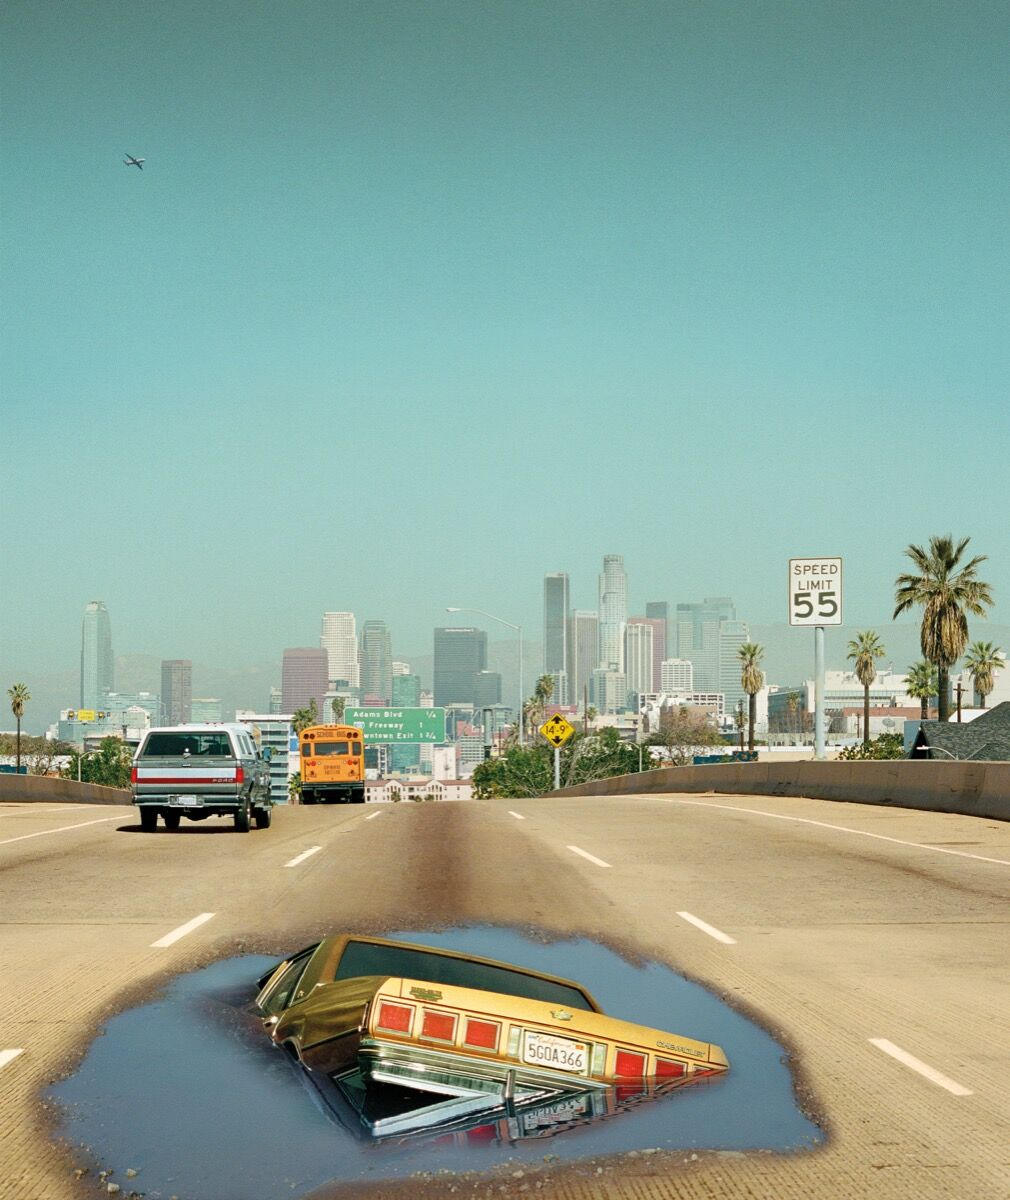 Alex Prager, 2pm Interstate 110, from the book Silver Lake Drive, 2012. Published by Chronicle Books.